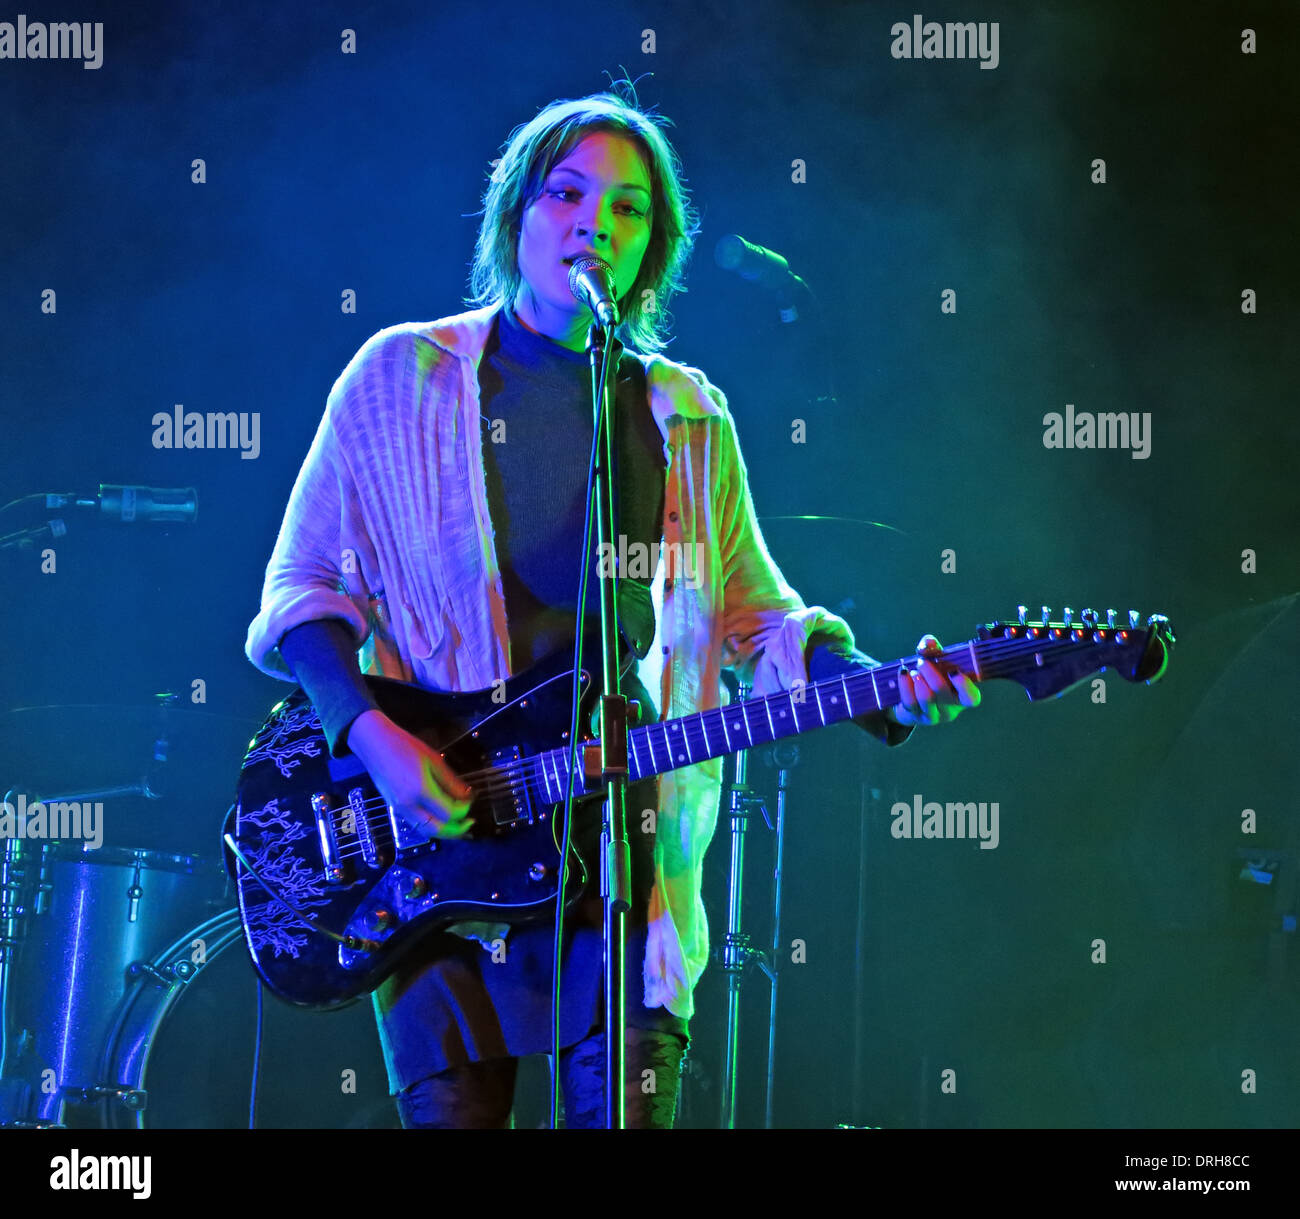 Meredith Sheldon aka Alamar supporting Johnny Marr at Manchester academy Gig 12/10/2013 Stock Photo